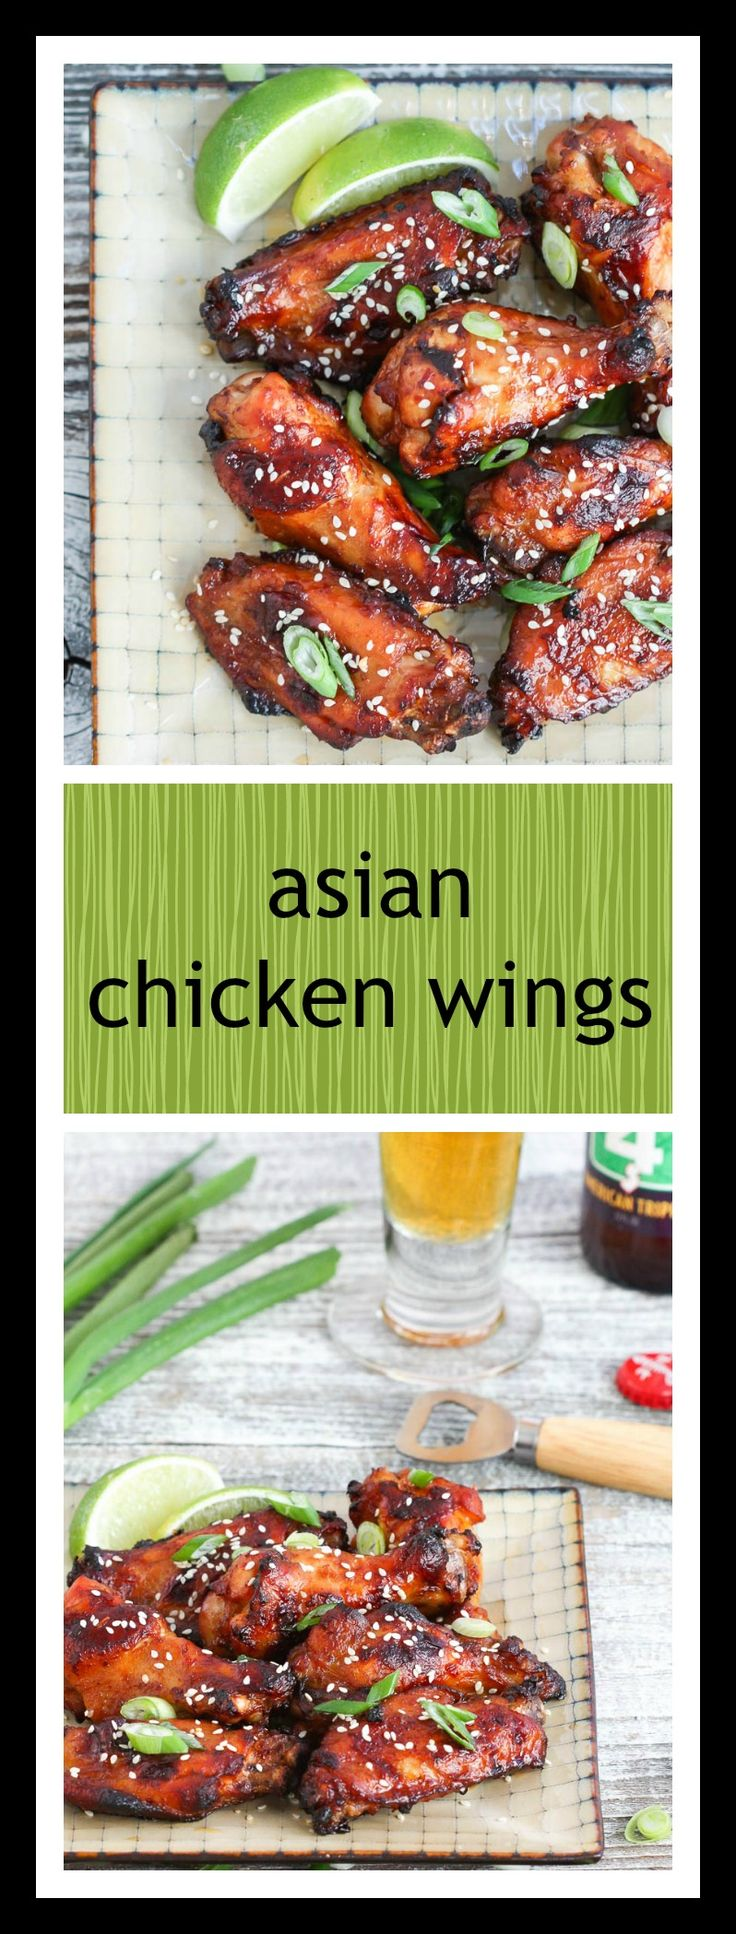 about Asian chicken wings on Pinterest | Asian wings, Sticky wings ...